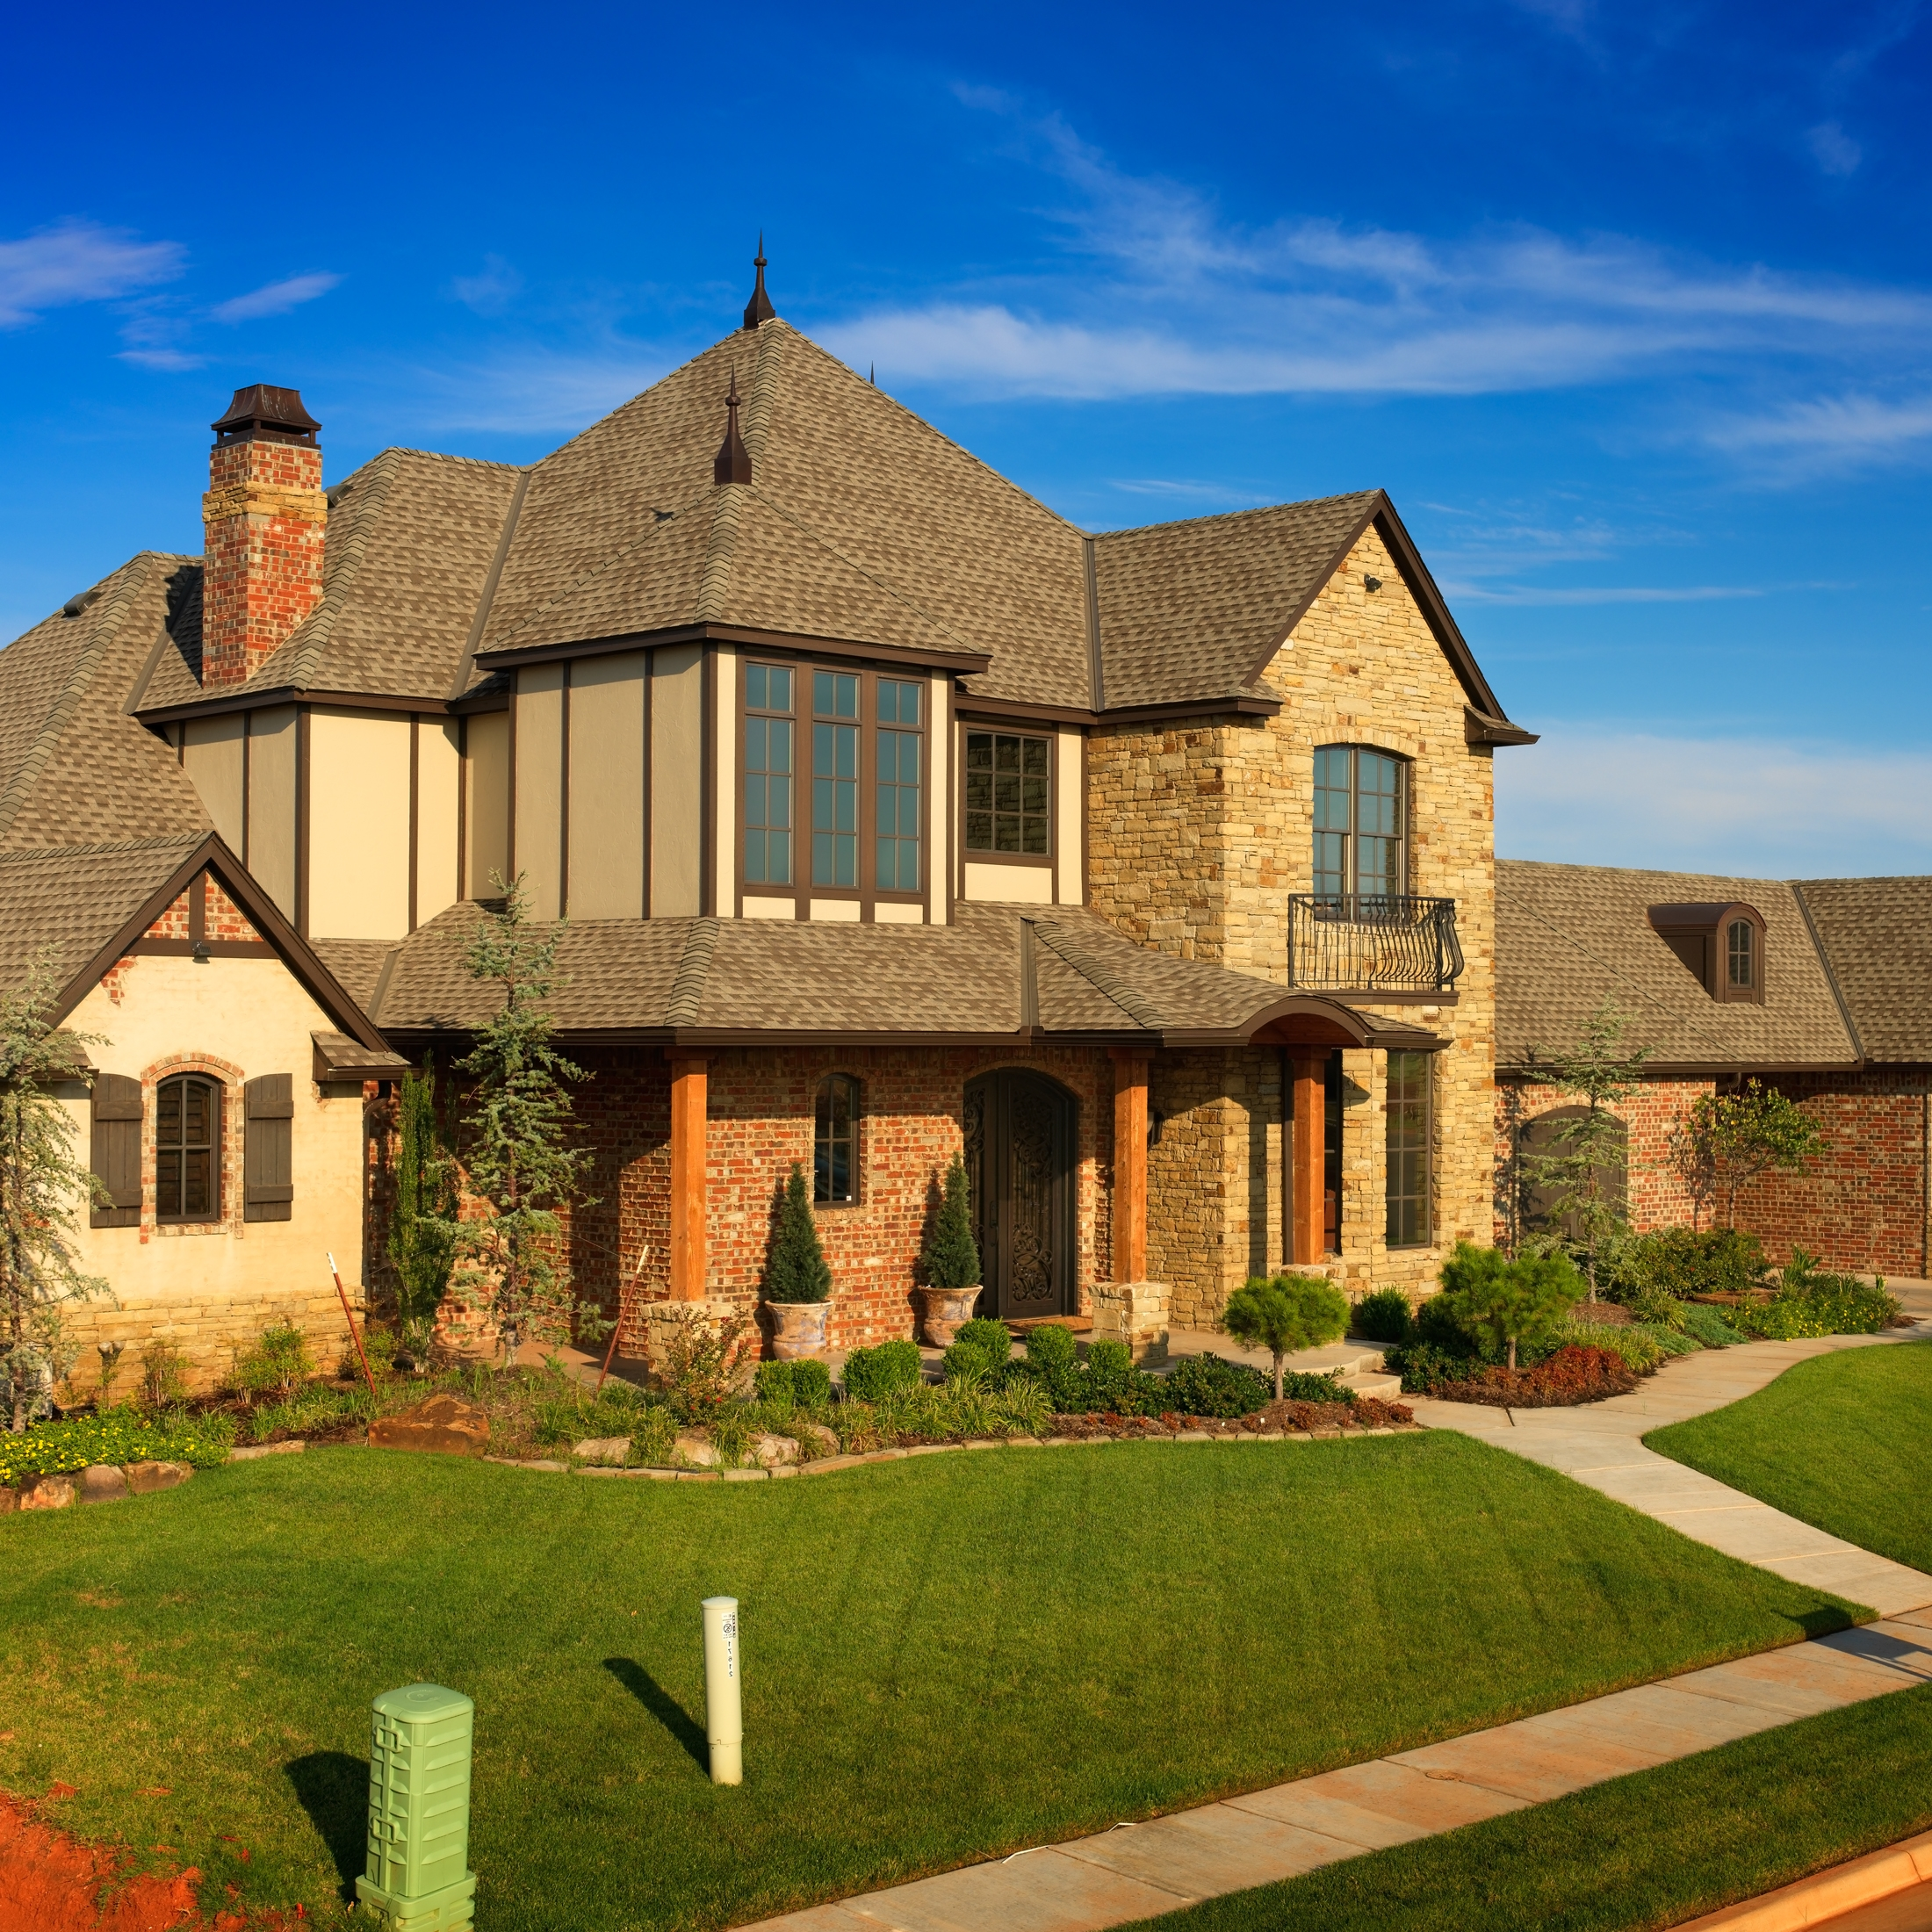 Gaf timberline hd shingles senez roofing llc for Wood house images